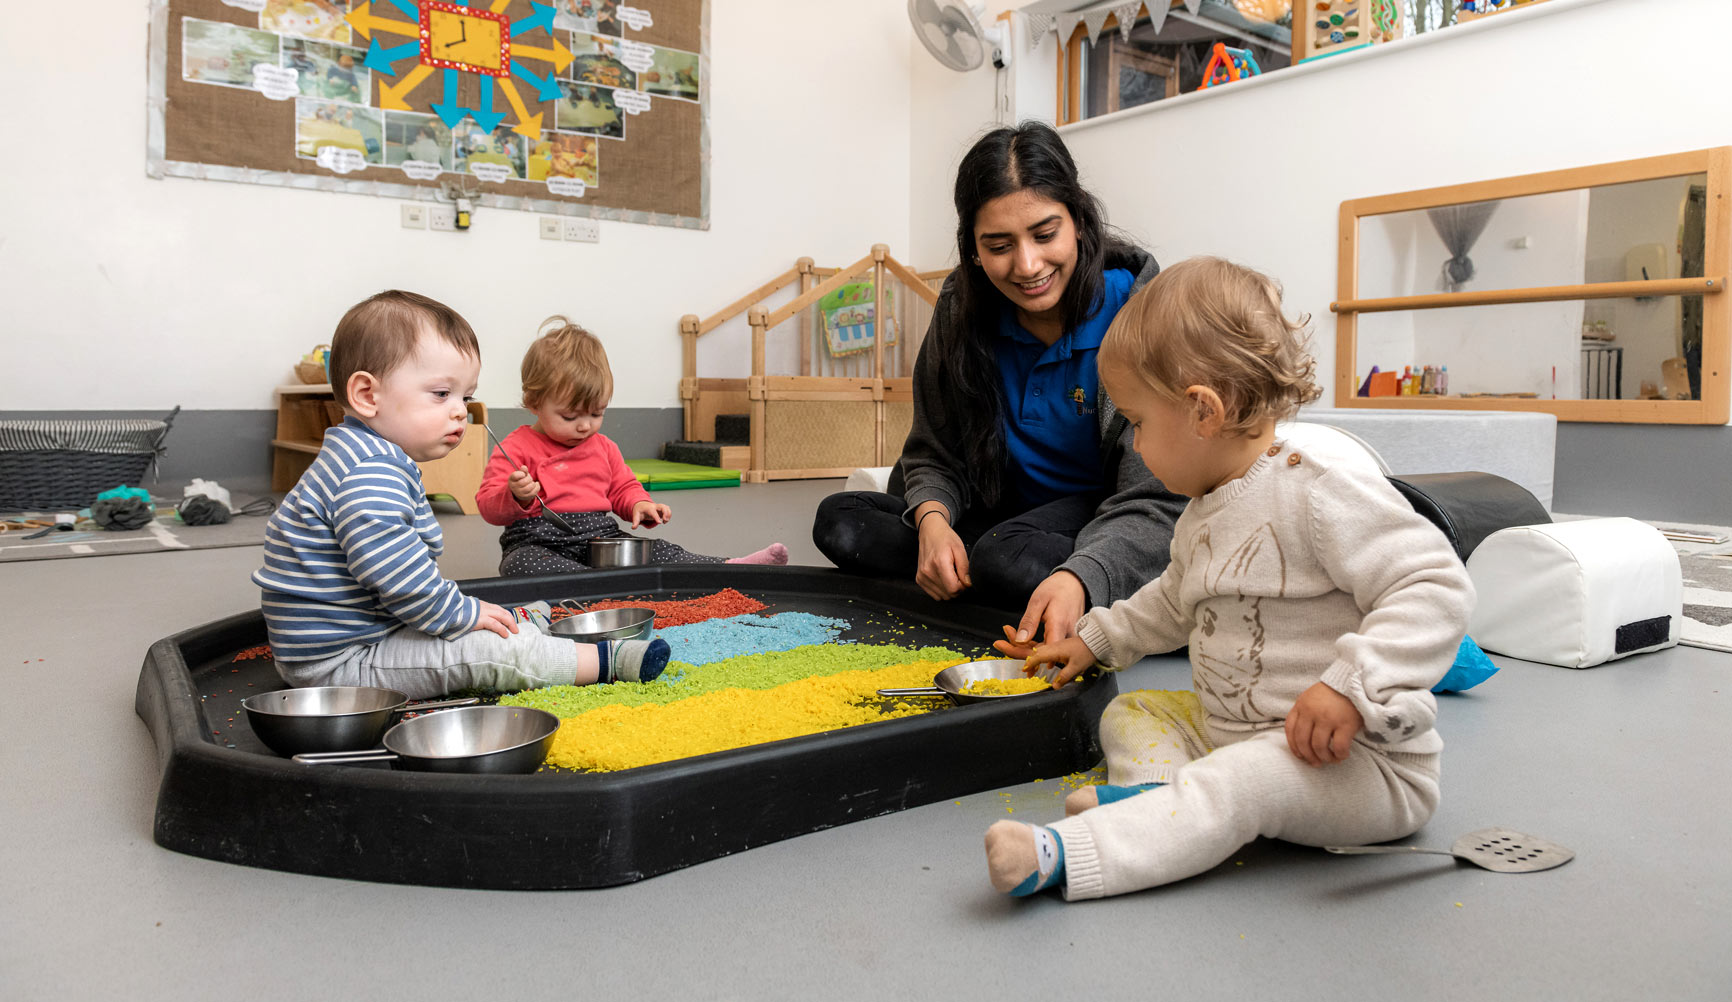 Our free-movement room allows children to develop their motor skills, physical development and coordination.